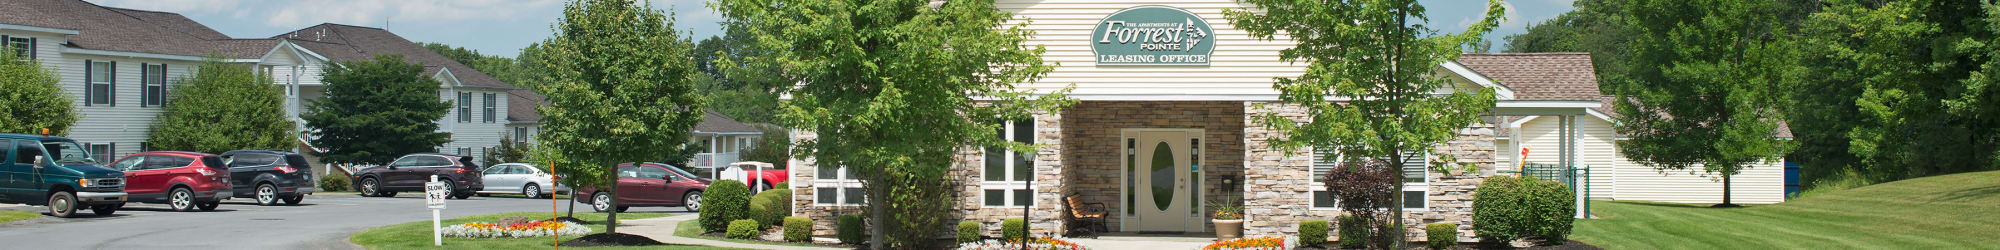 Schedule a tour at Forrest Pointe Apartments and Townhomes in East Greenbush